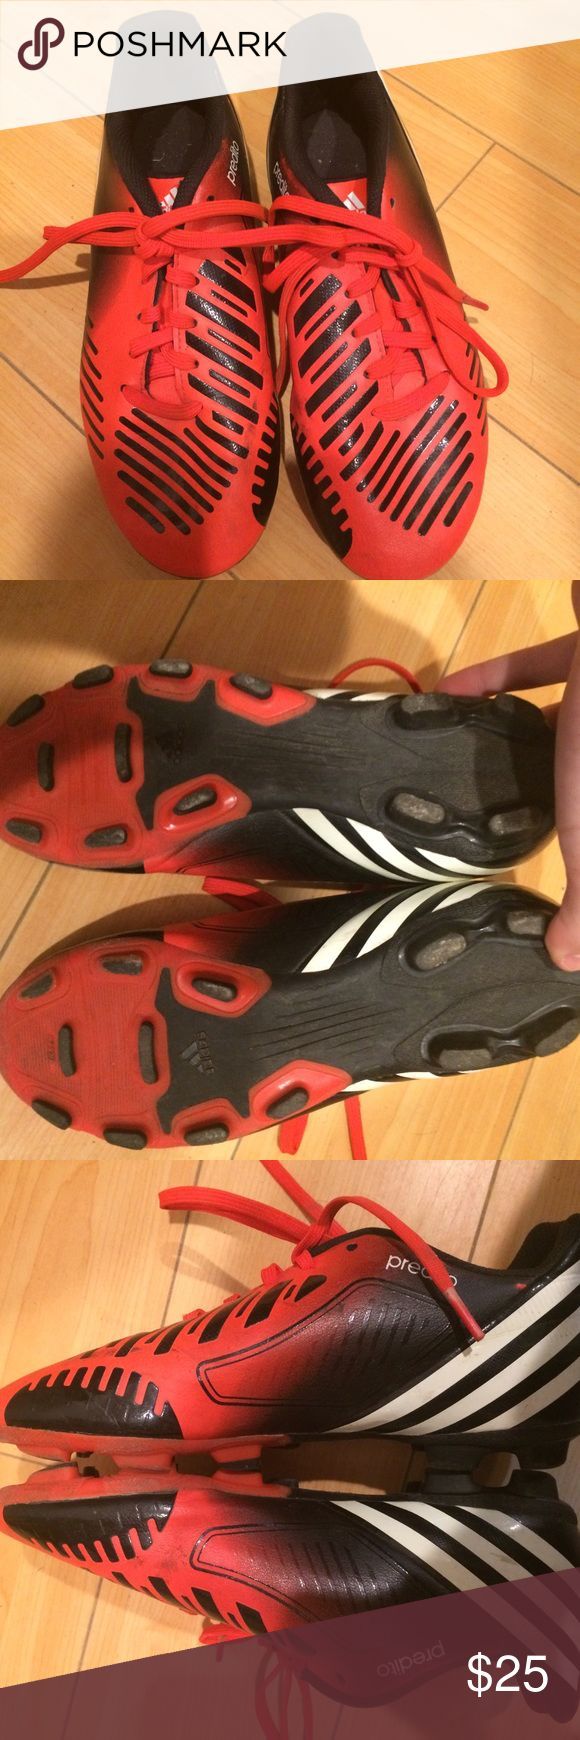 Adidas soccer shoes In good used condition. No tear, minor scratches. Synthetic Leather Rubber sole Predator design dna built to control and move the ball down field Soft abrasion resistant synthetic upper with leather forefoot finish for fit, control and comfort Soft textile lining for comfort and fit Die-cut ethylene vinyl acetate sockliner for comfort and cushion New flexible firm ground tooling for natural and artificial outdoor surfaces Adidas Shoes Sneakers